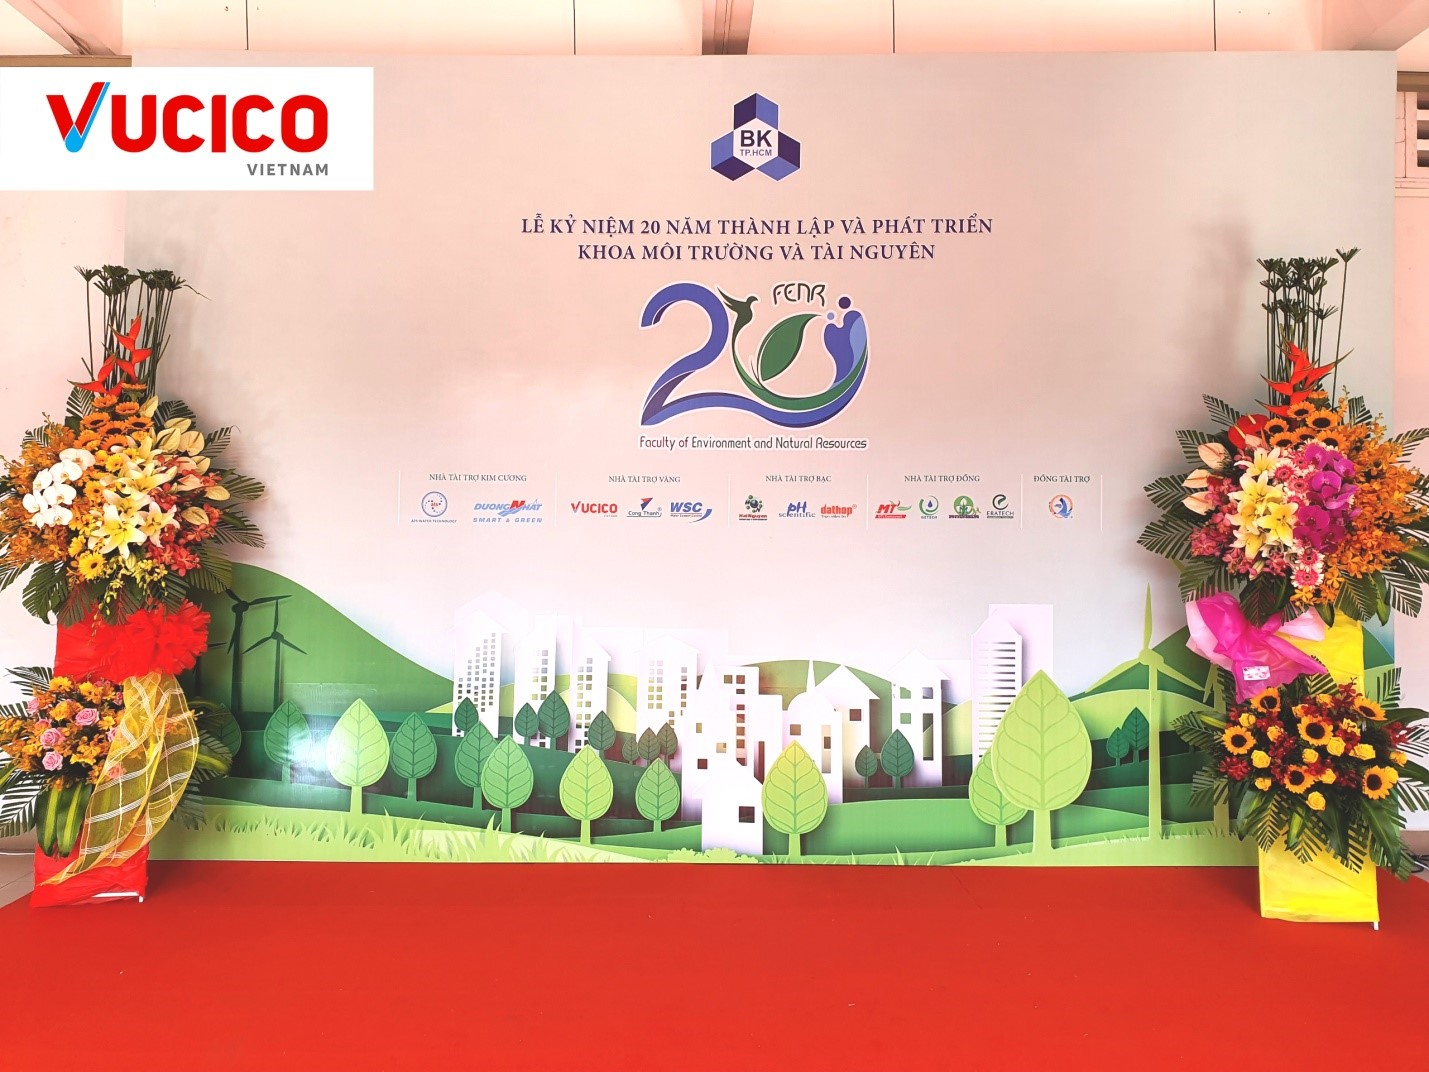 THE 20TH ANNIVERSARY OF THE FOUNDING OF THE DEPARTMENT OF ENVIRONMENT AND NATURAL RESOURCES OF THE HO CHI MINH CITY UNIVERSITY OF TECHNOLOGY